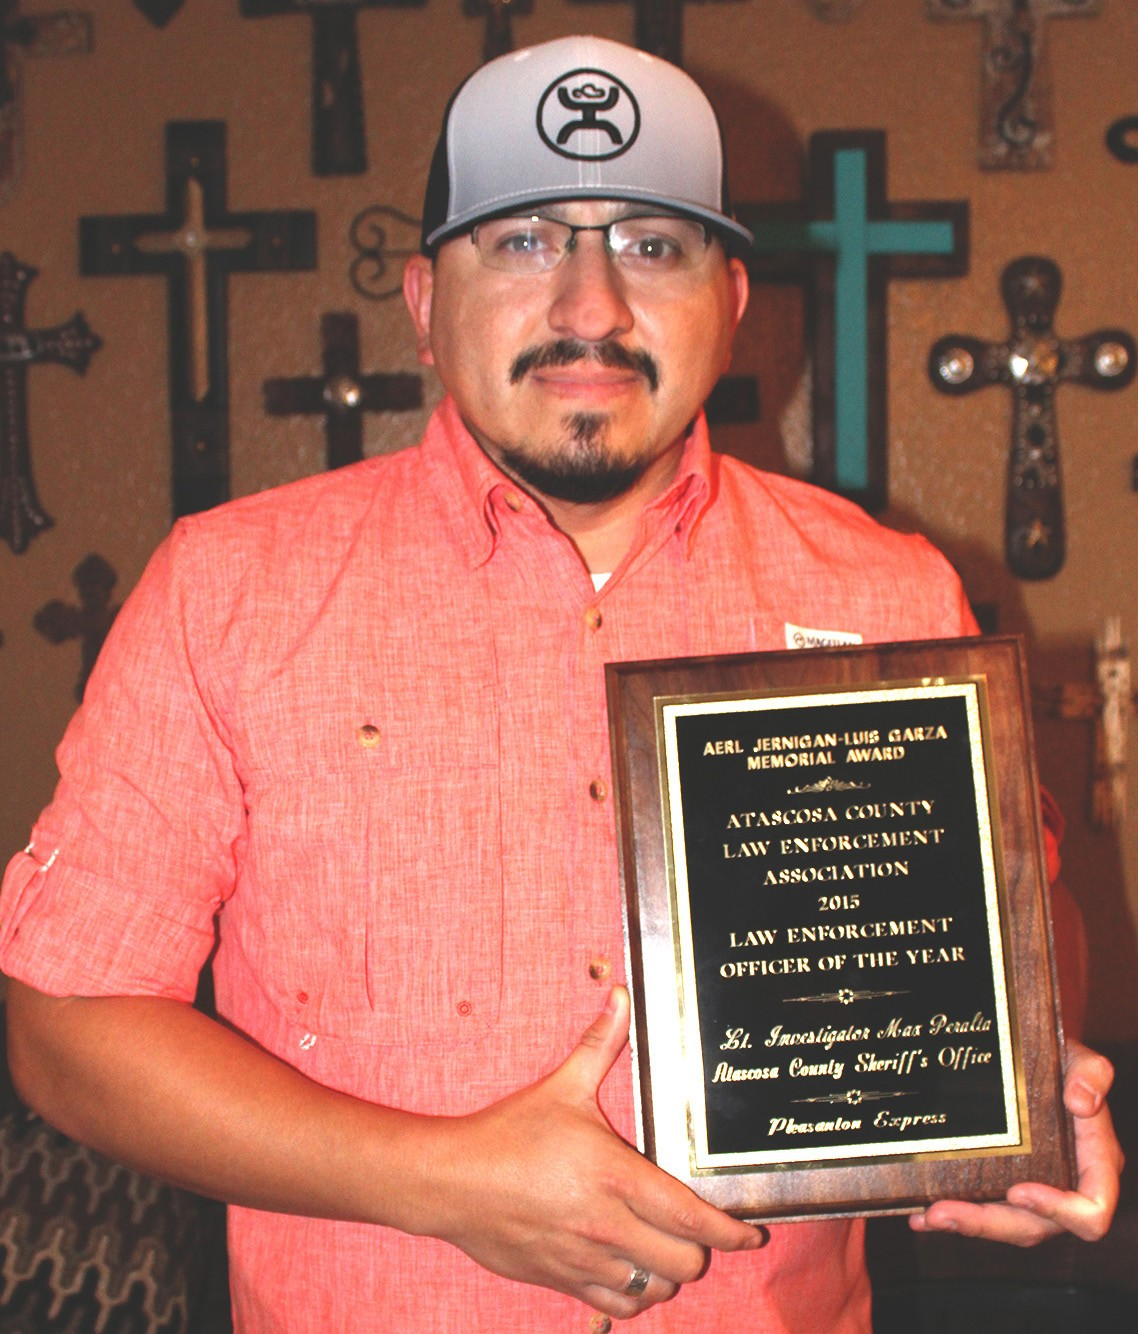 Lt. Investigator Max Peralta ACLEOA Officer of the Year